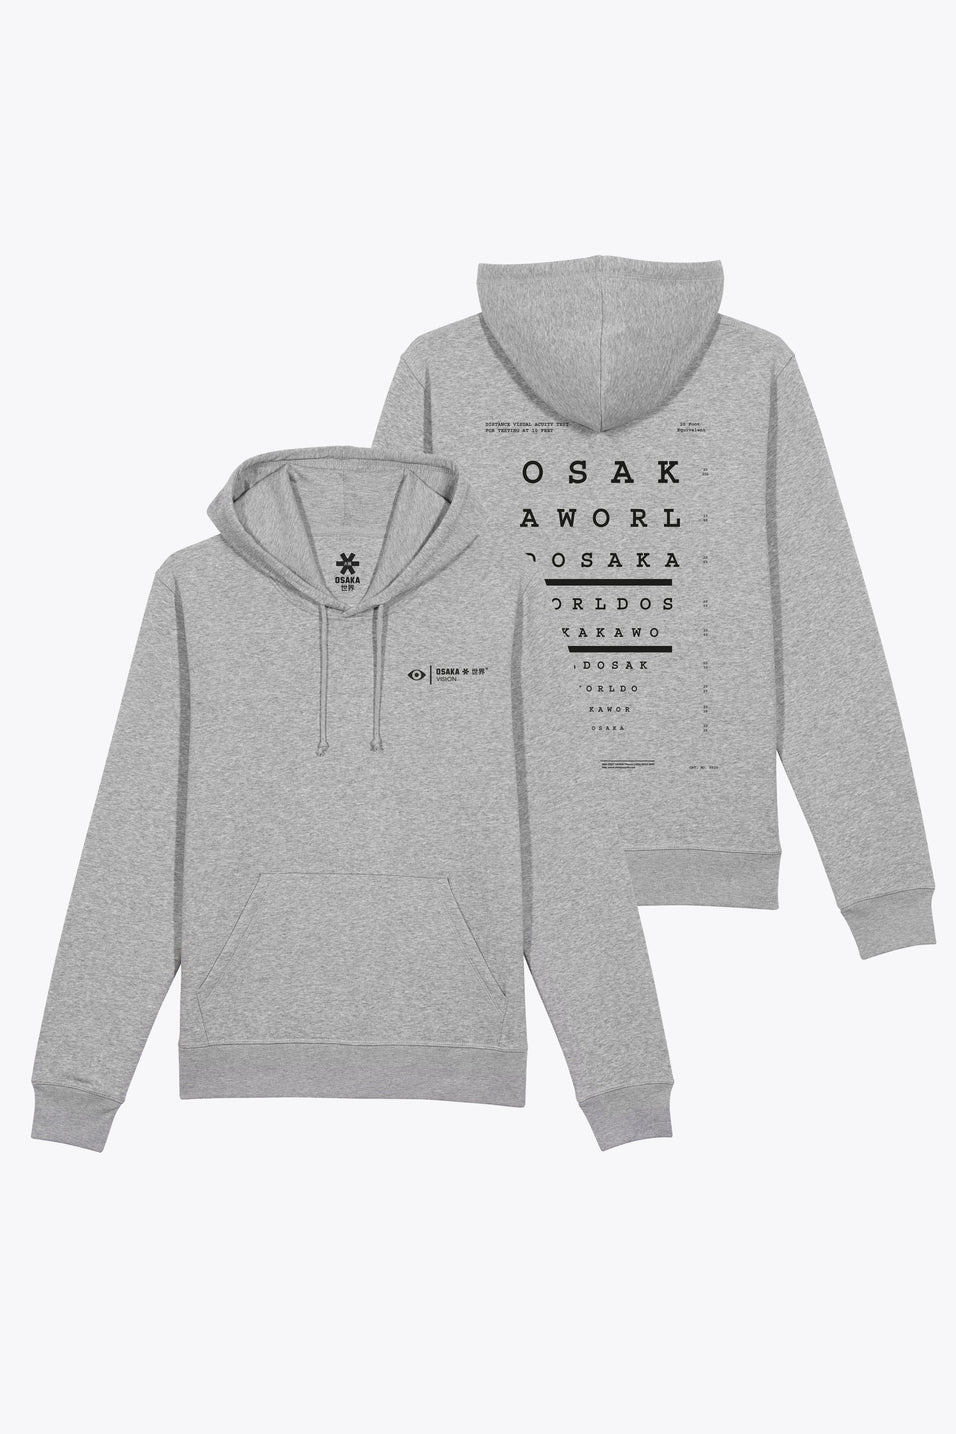 Osakahoodie grey analogue